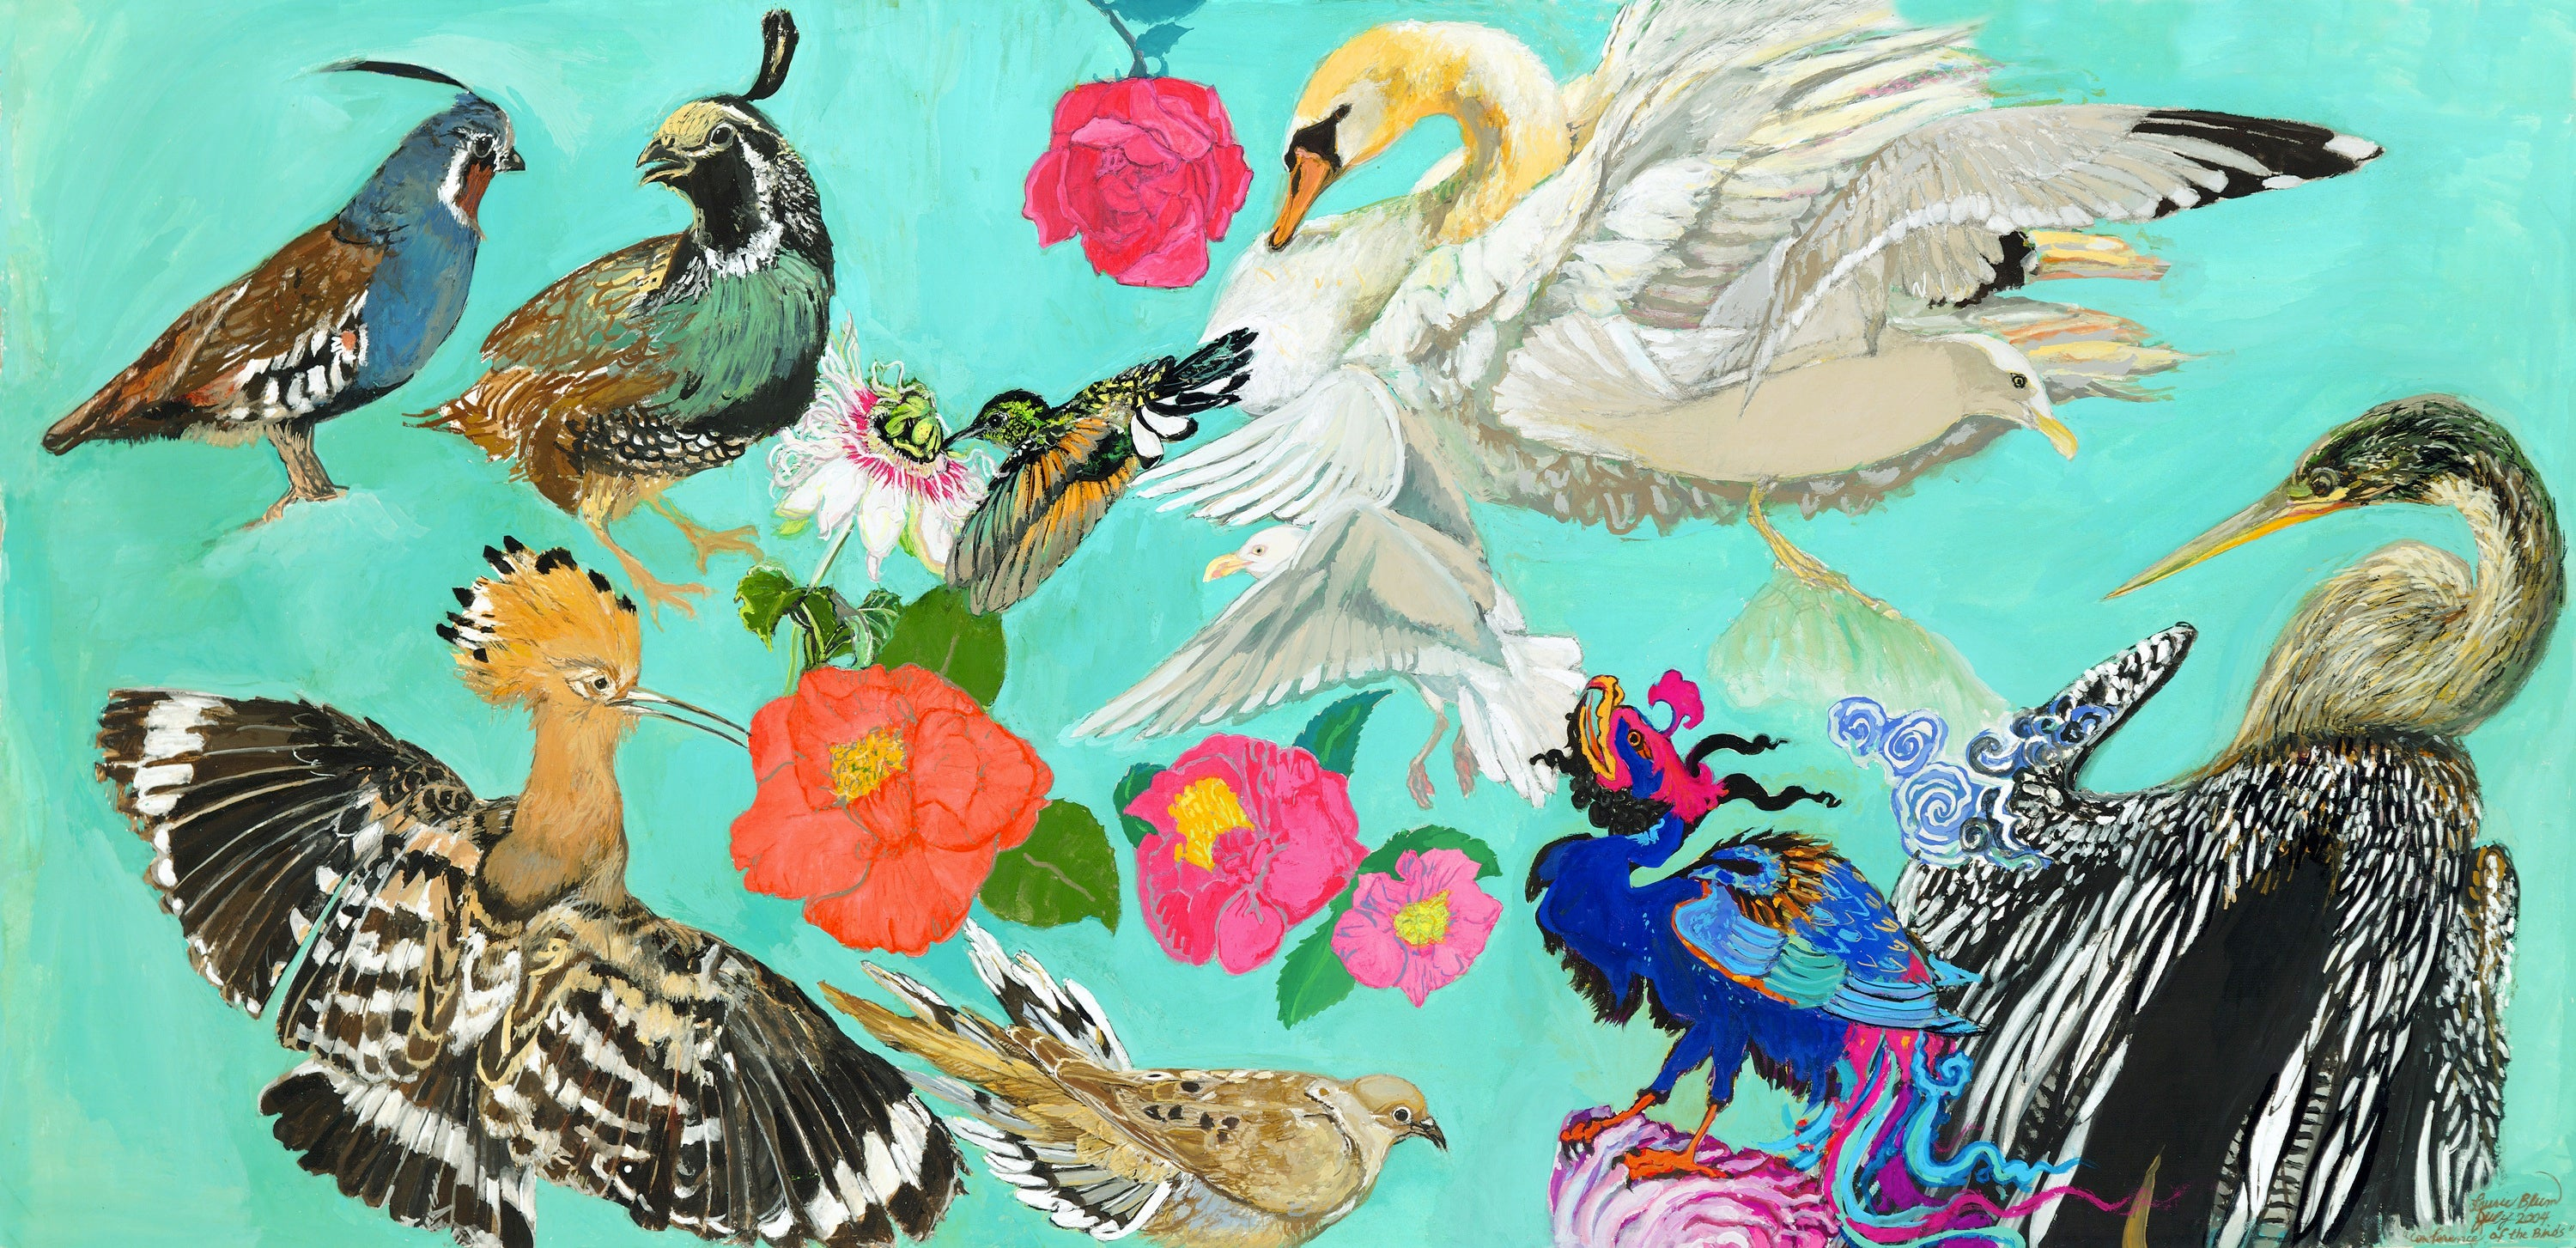 An image of Conference of the Birds Painting painted by Laurie Blum. The painting has a magnificent turquoise background with flowers, camellias, roses, and the Mountain Quail and California Quail, Hoopoe, Hummingbird, Mourning Dove, Swan and Seagulls, Simurgh, and Anhinga.